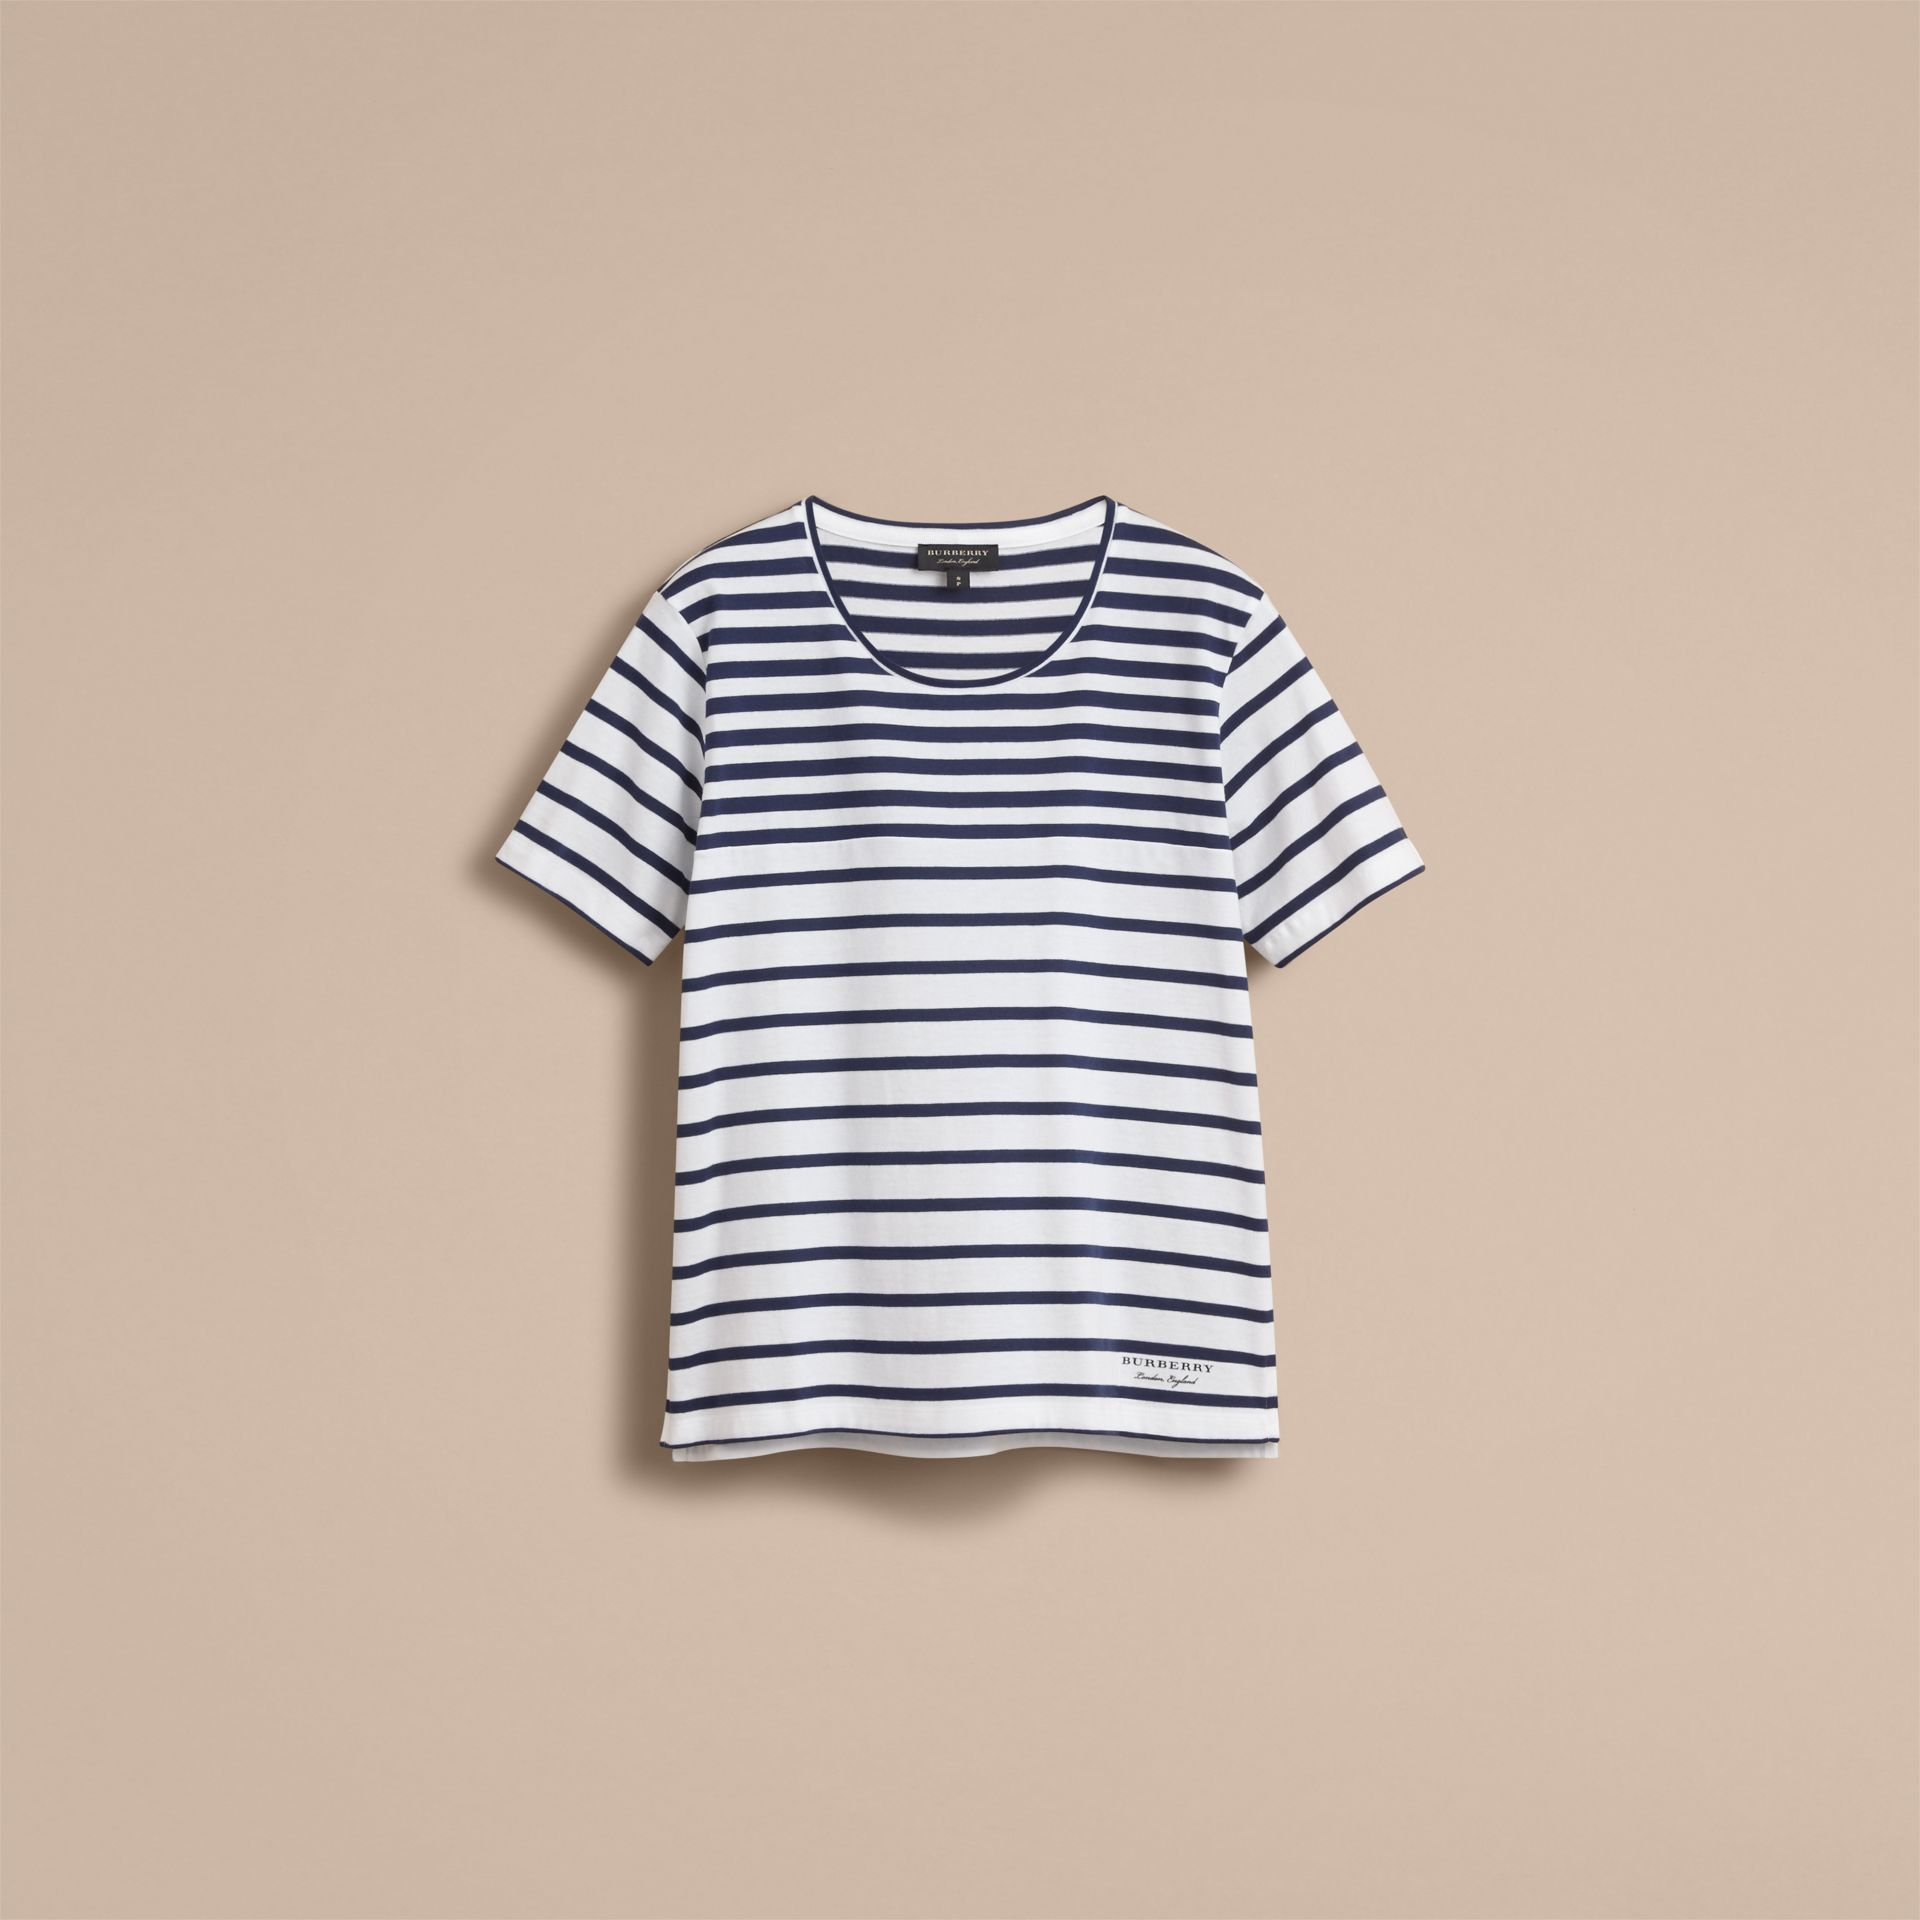 Breton Stripe Cotton T-shirt in Navy/white - Women | Burberry - gallery image 4